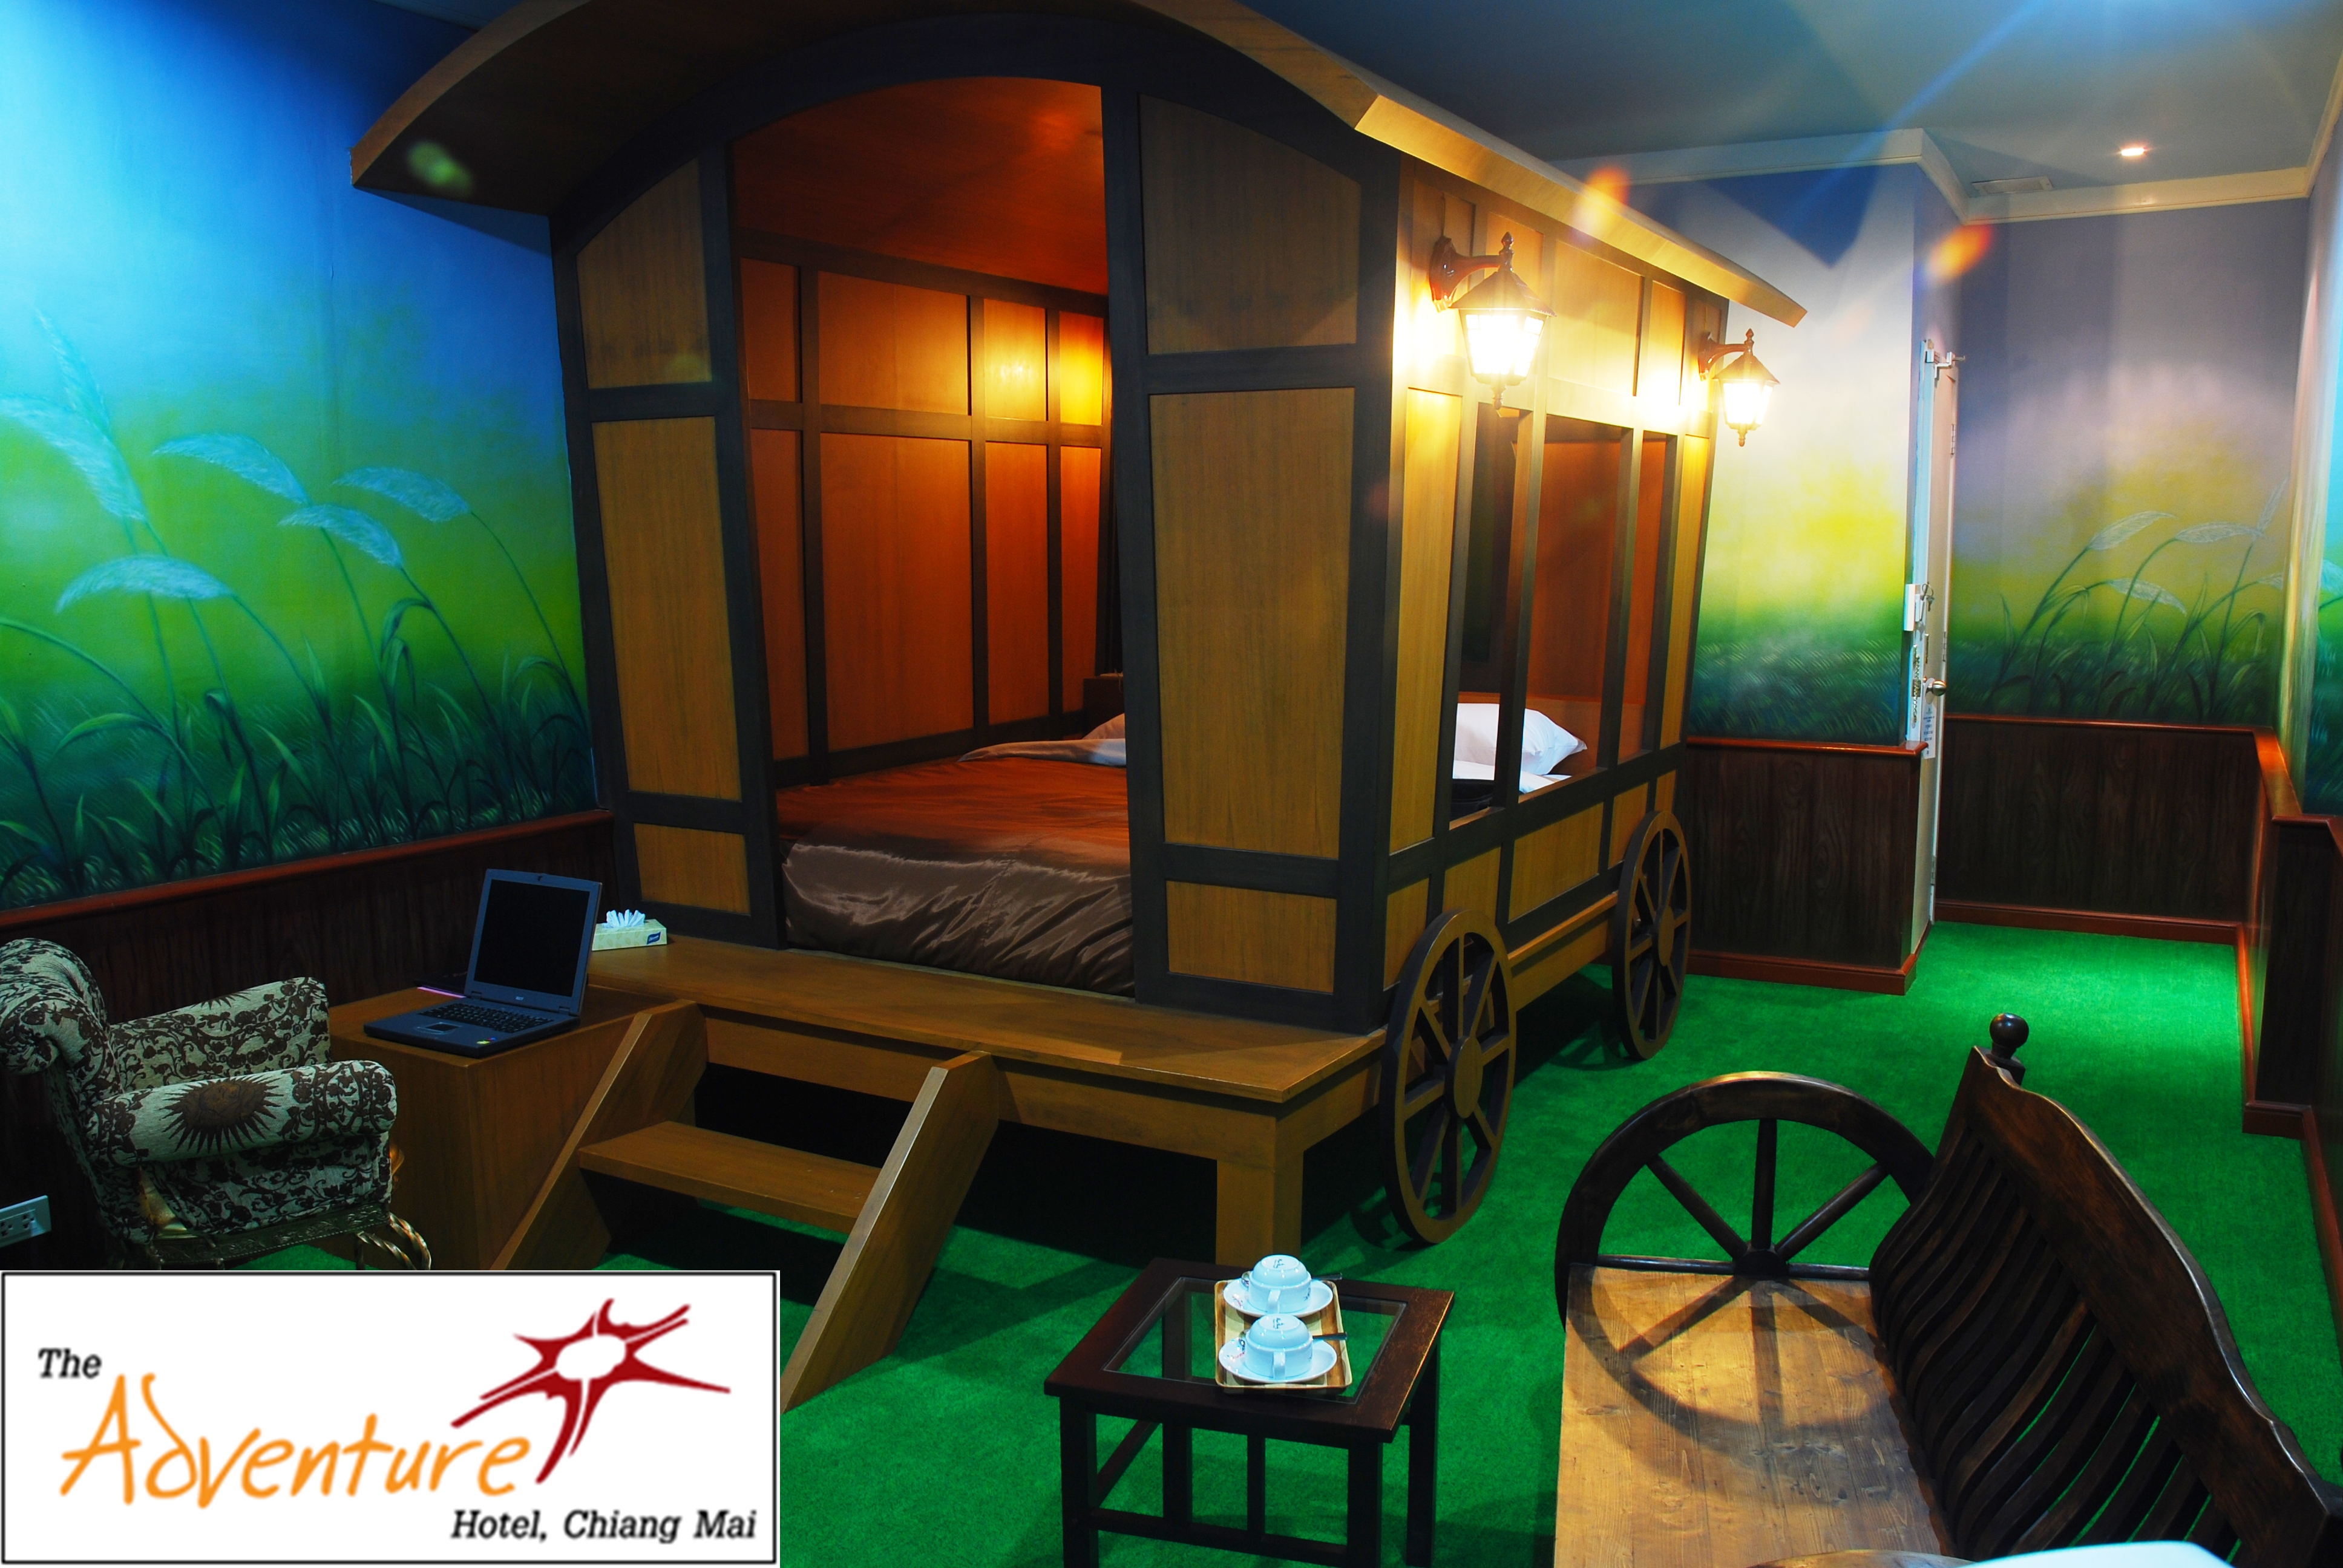 The-Adventure-Hotel-Chiang-Mai